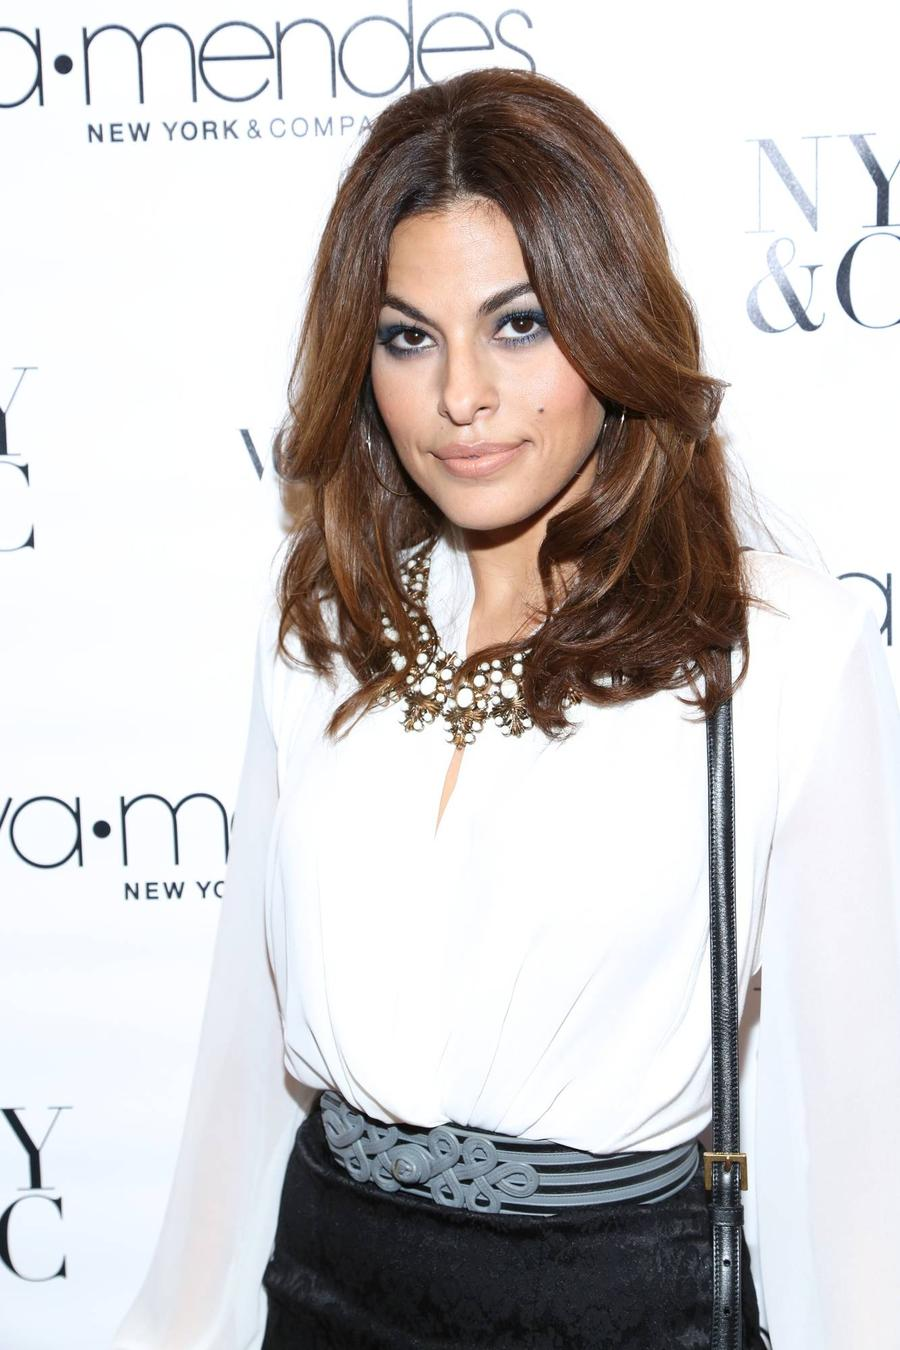 Eva Mendes Pregnant With Baby Number Two - Report